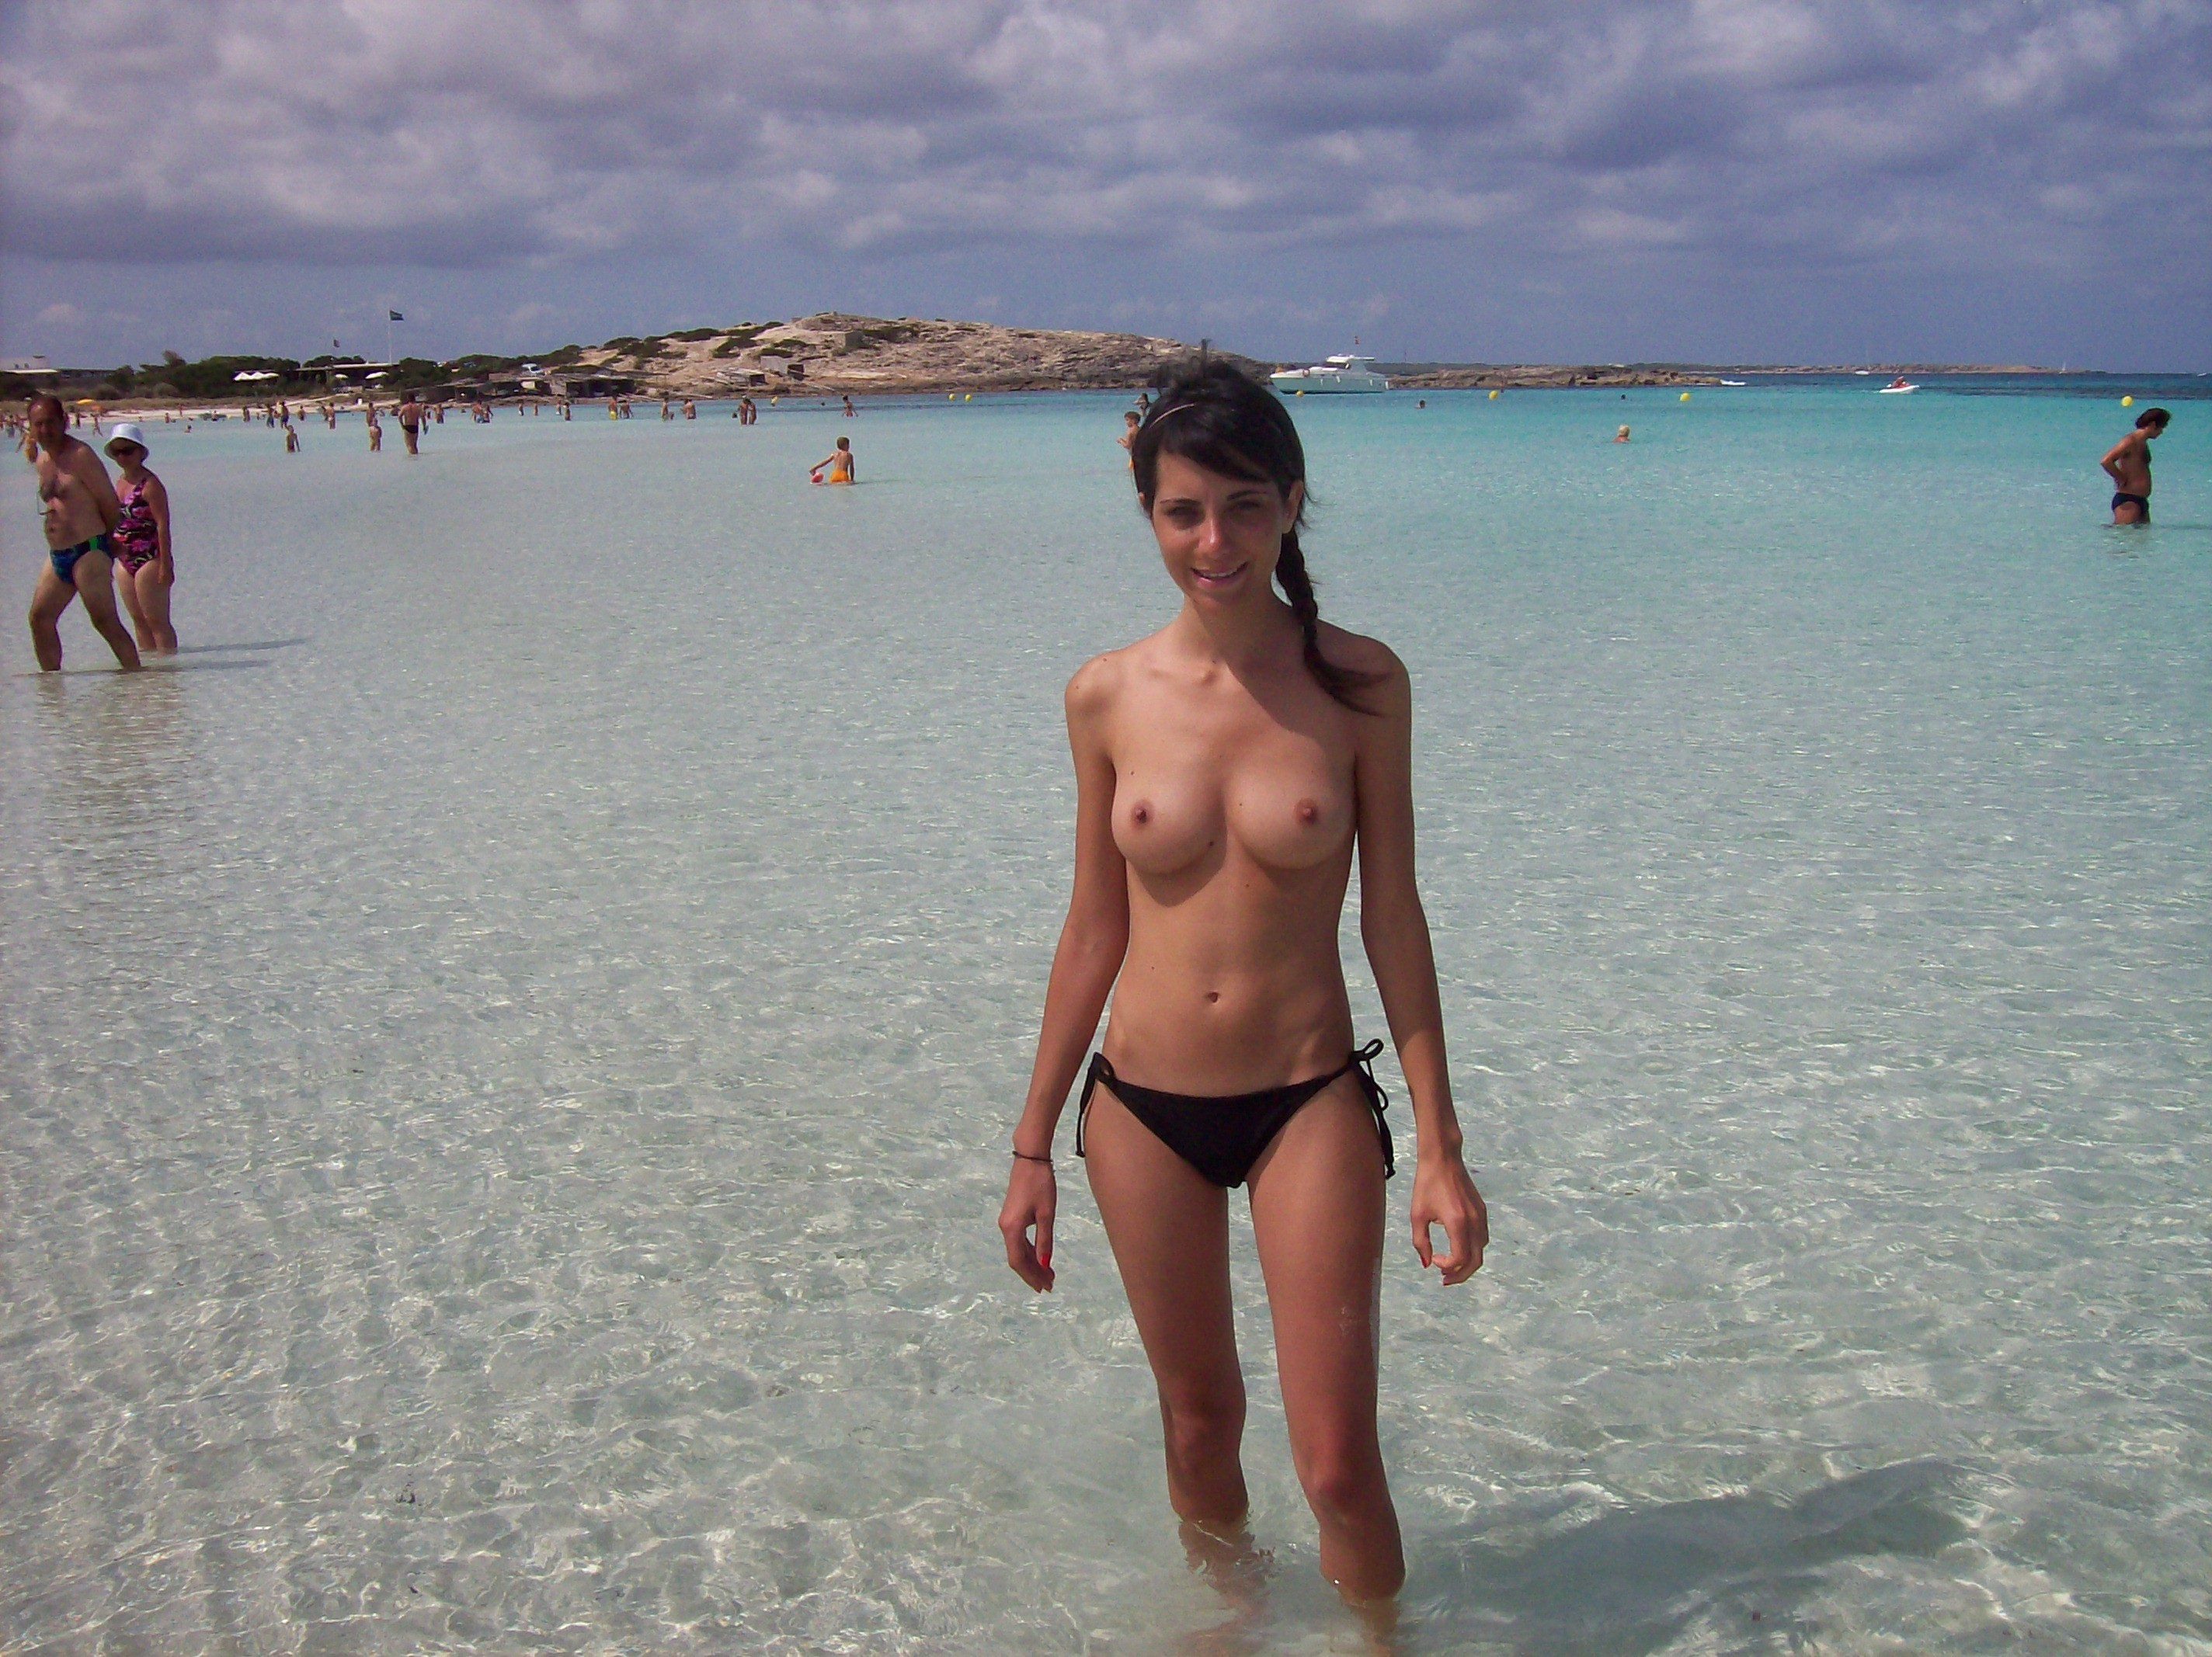 nudists-girls-boobs-beach-topless-mix-vol7-13